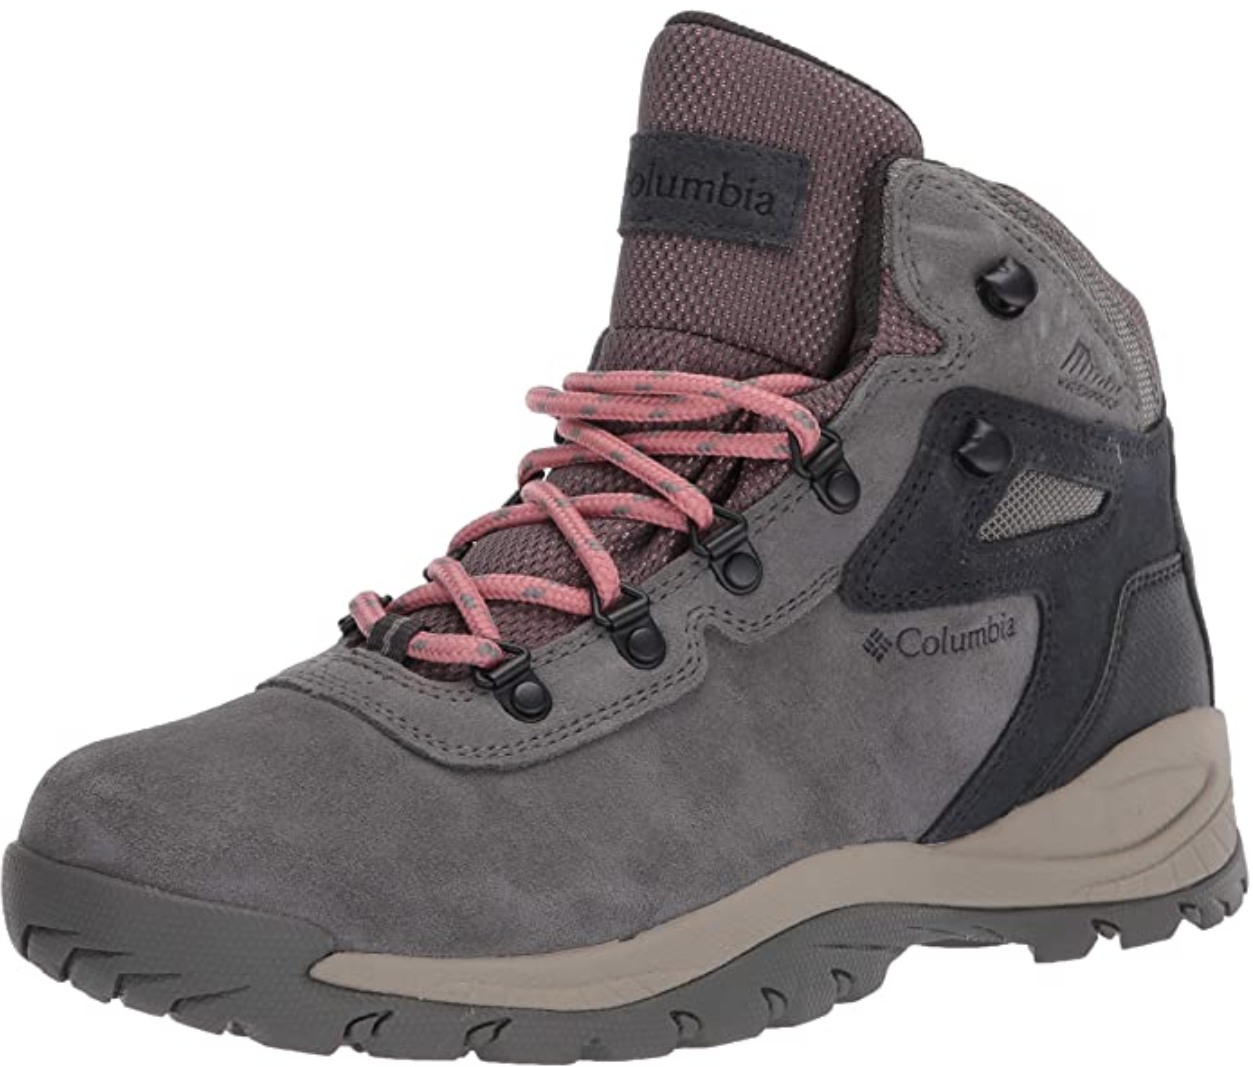 Best Hiking Boots for Women Who Love